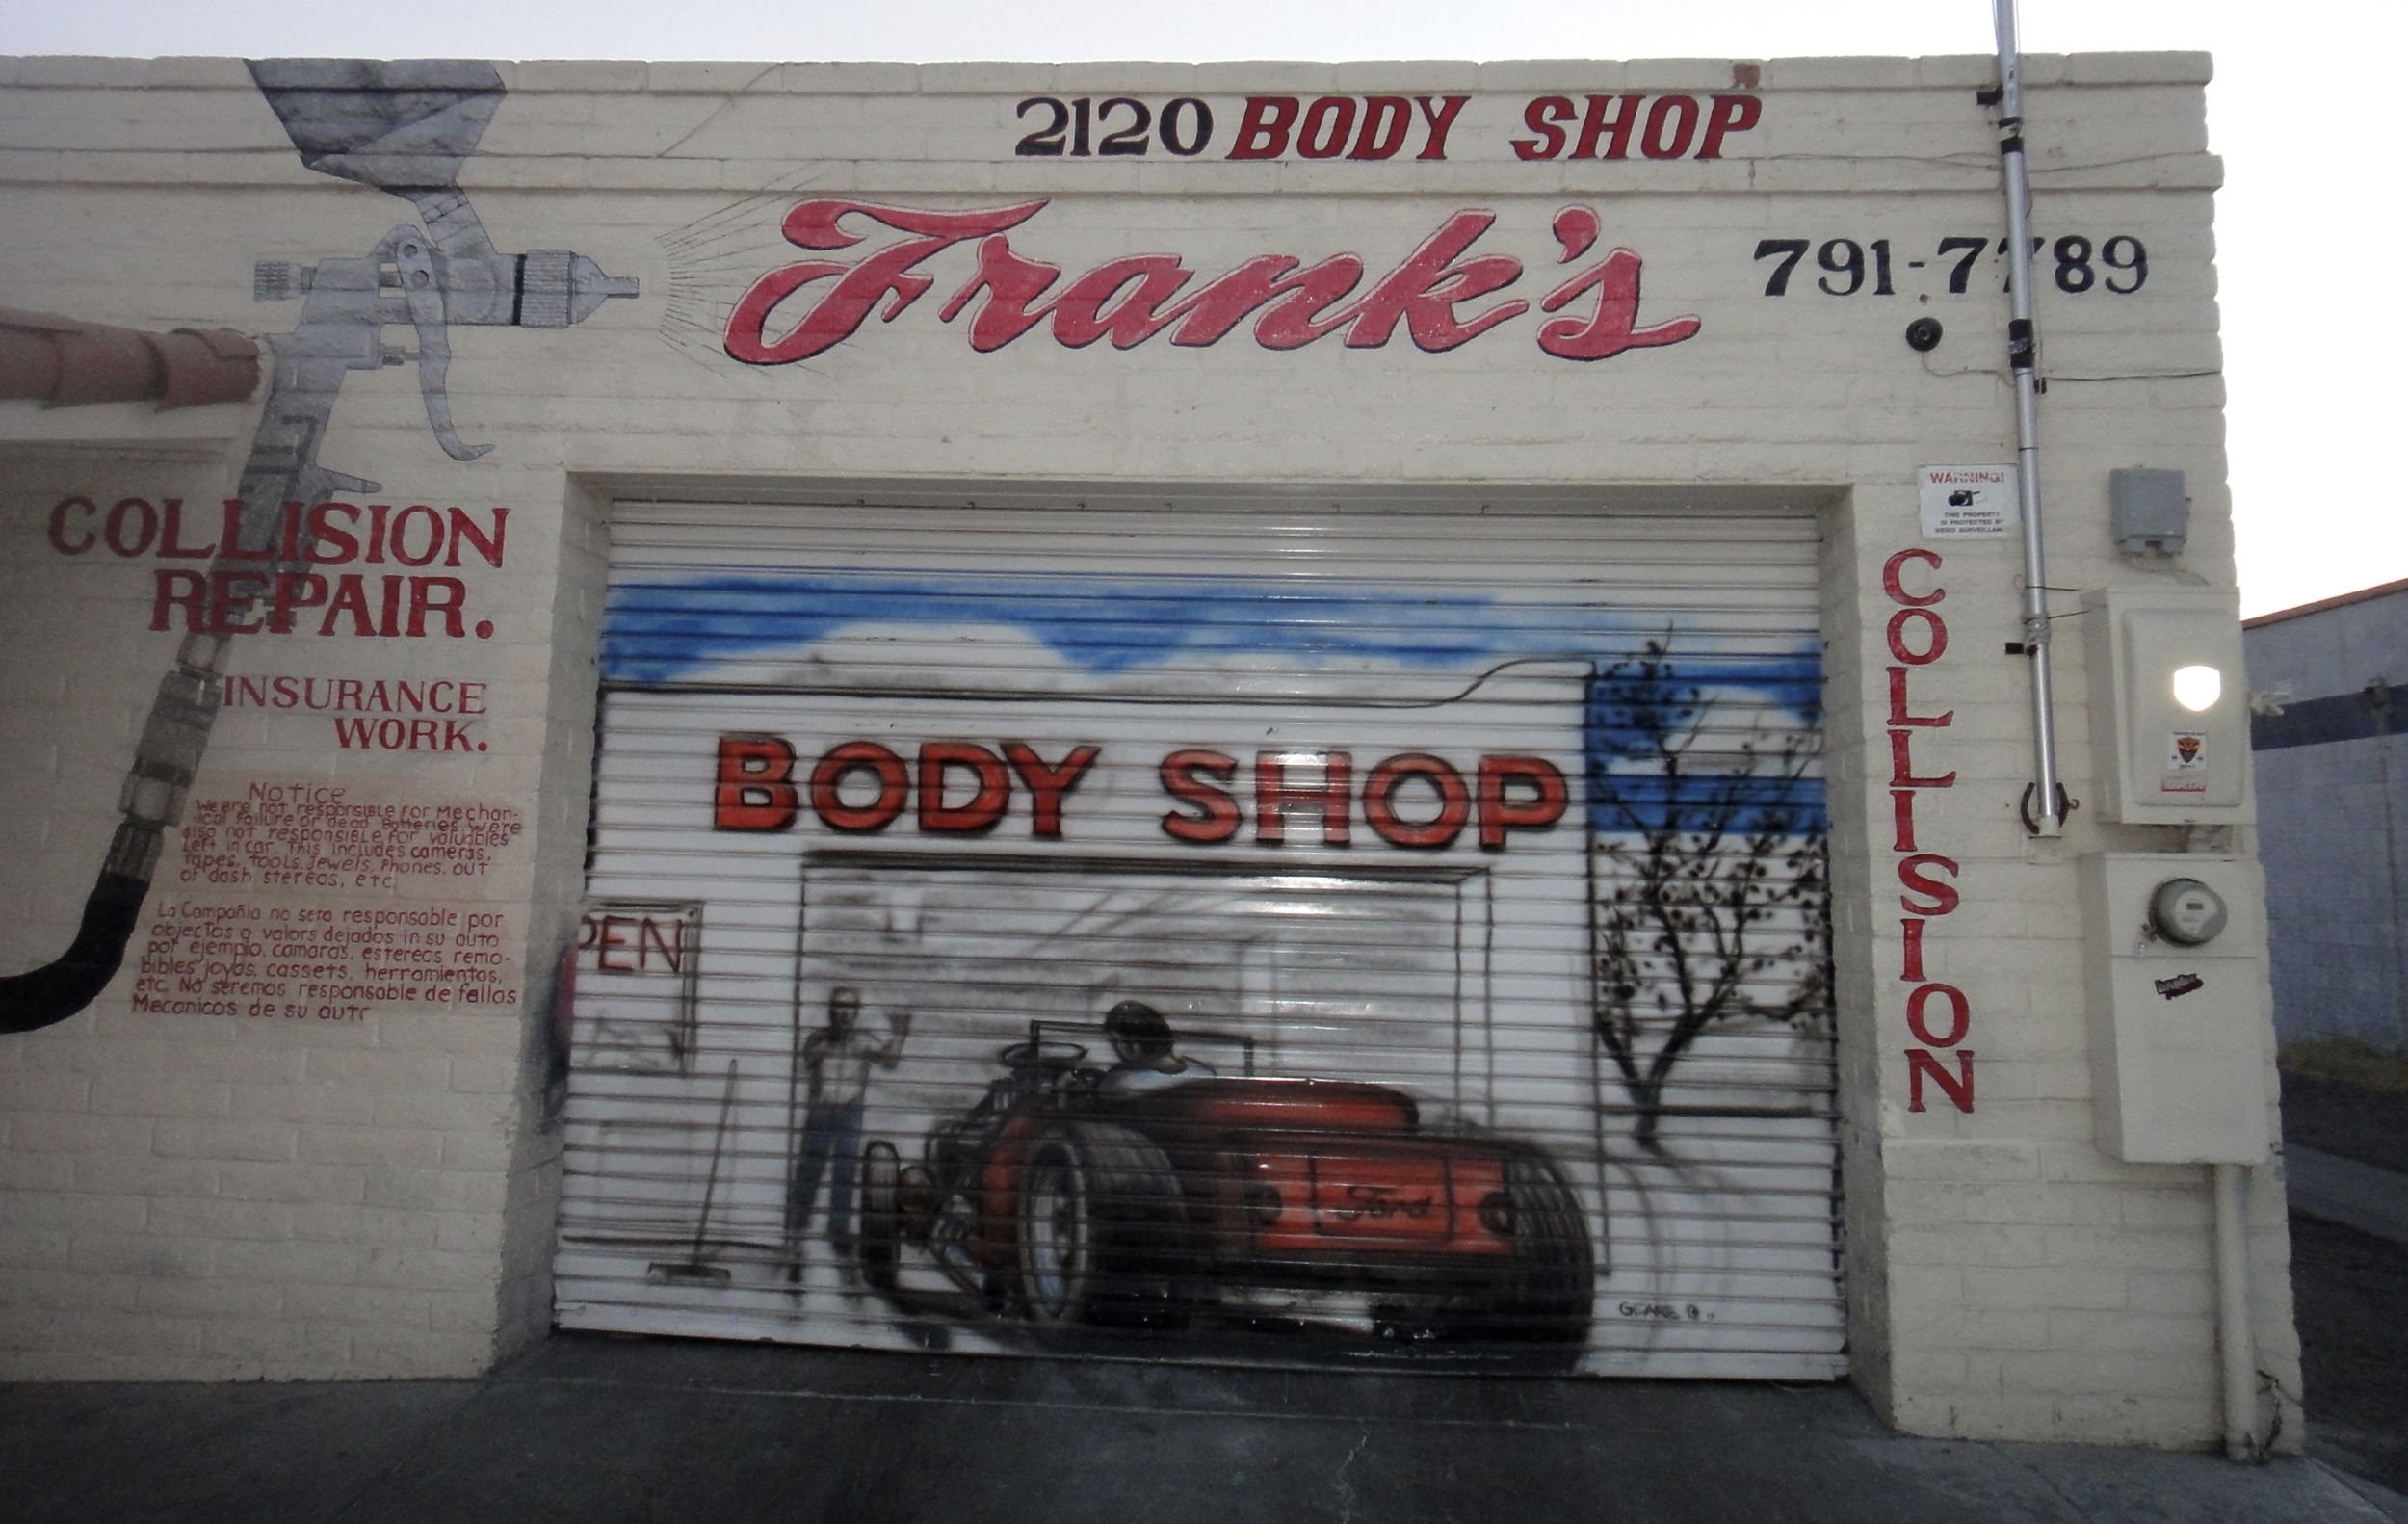 South Tucson is the land of auto repair shops -- radiators, tires, paint jobs, body works, you name it.